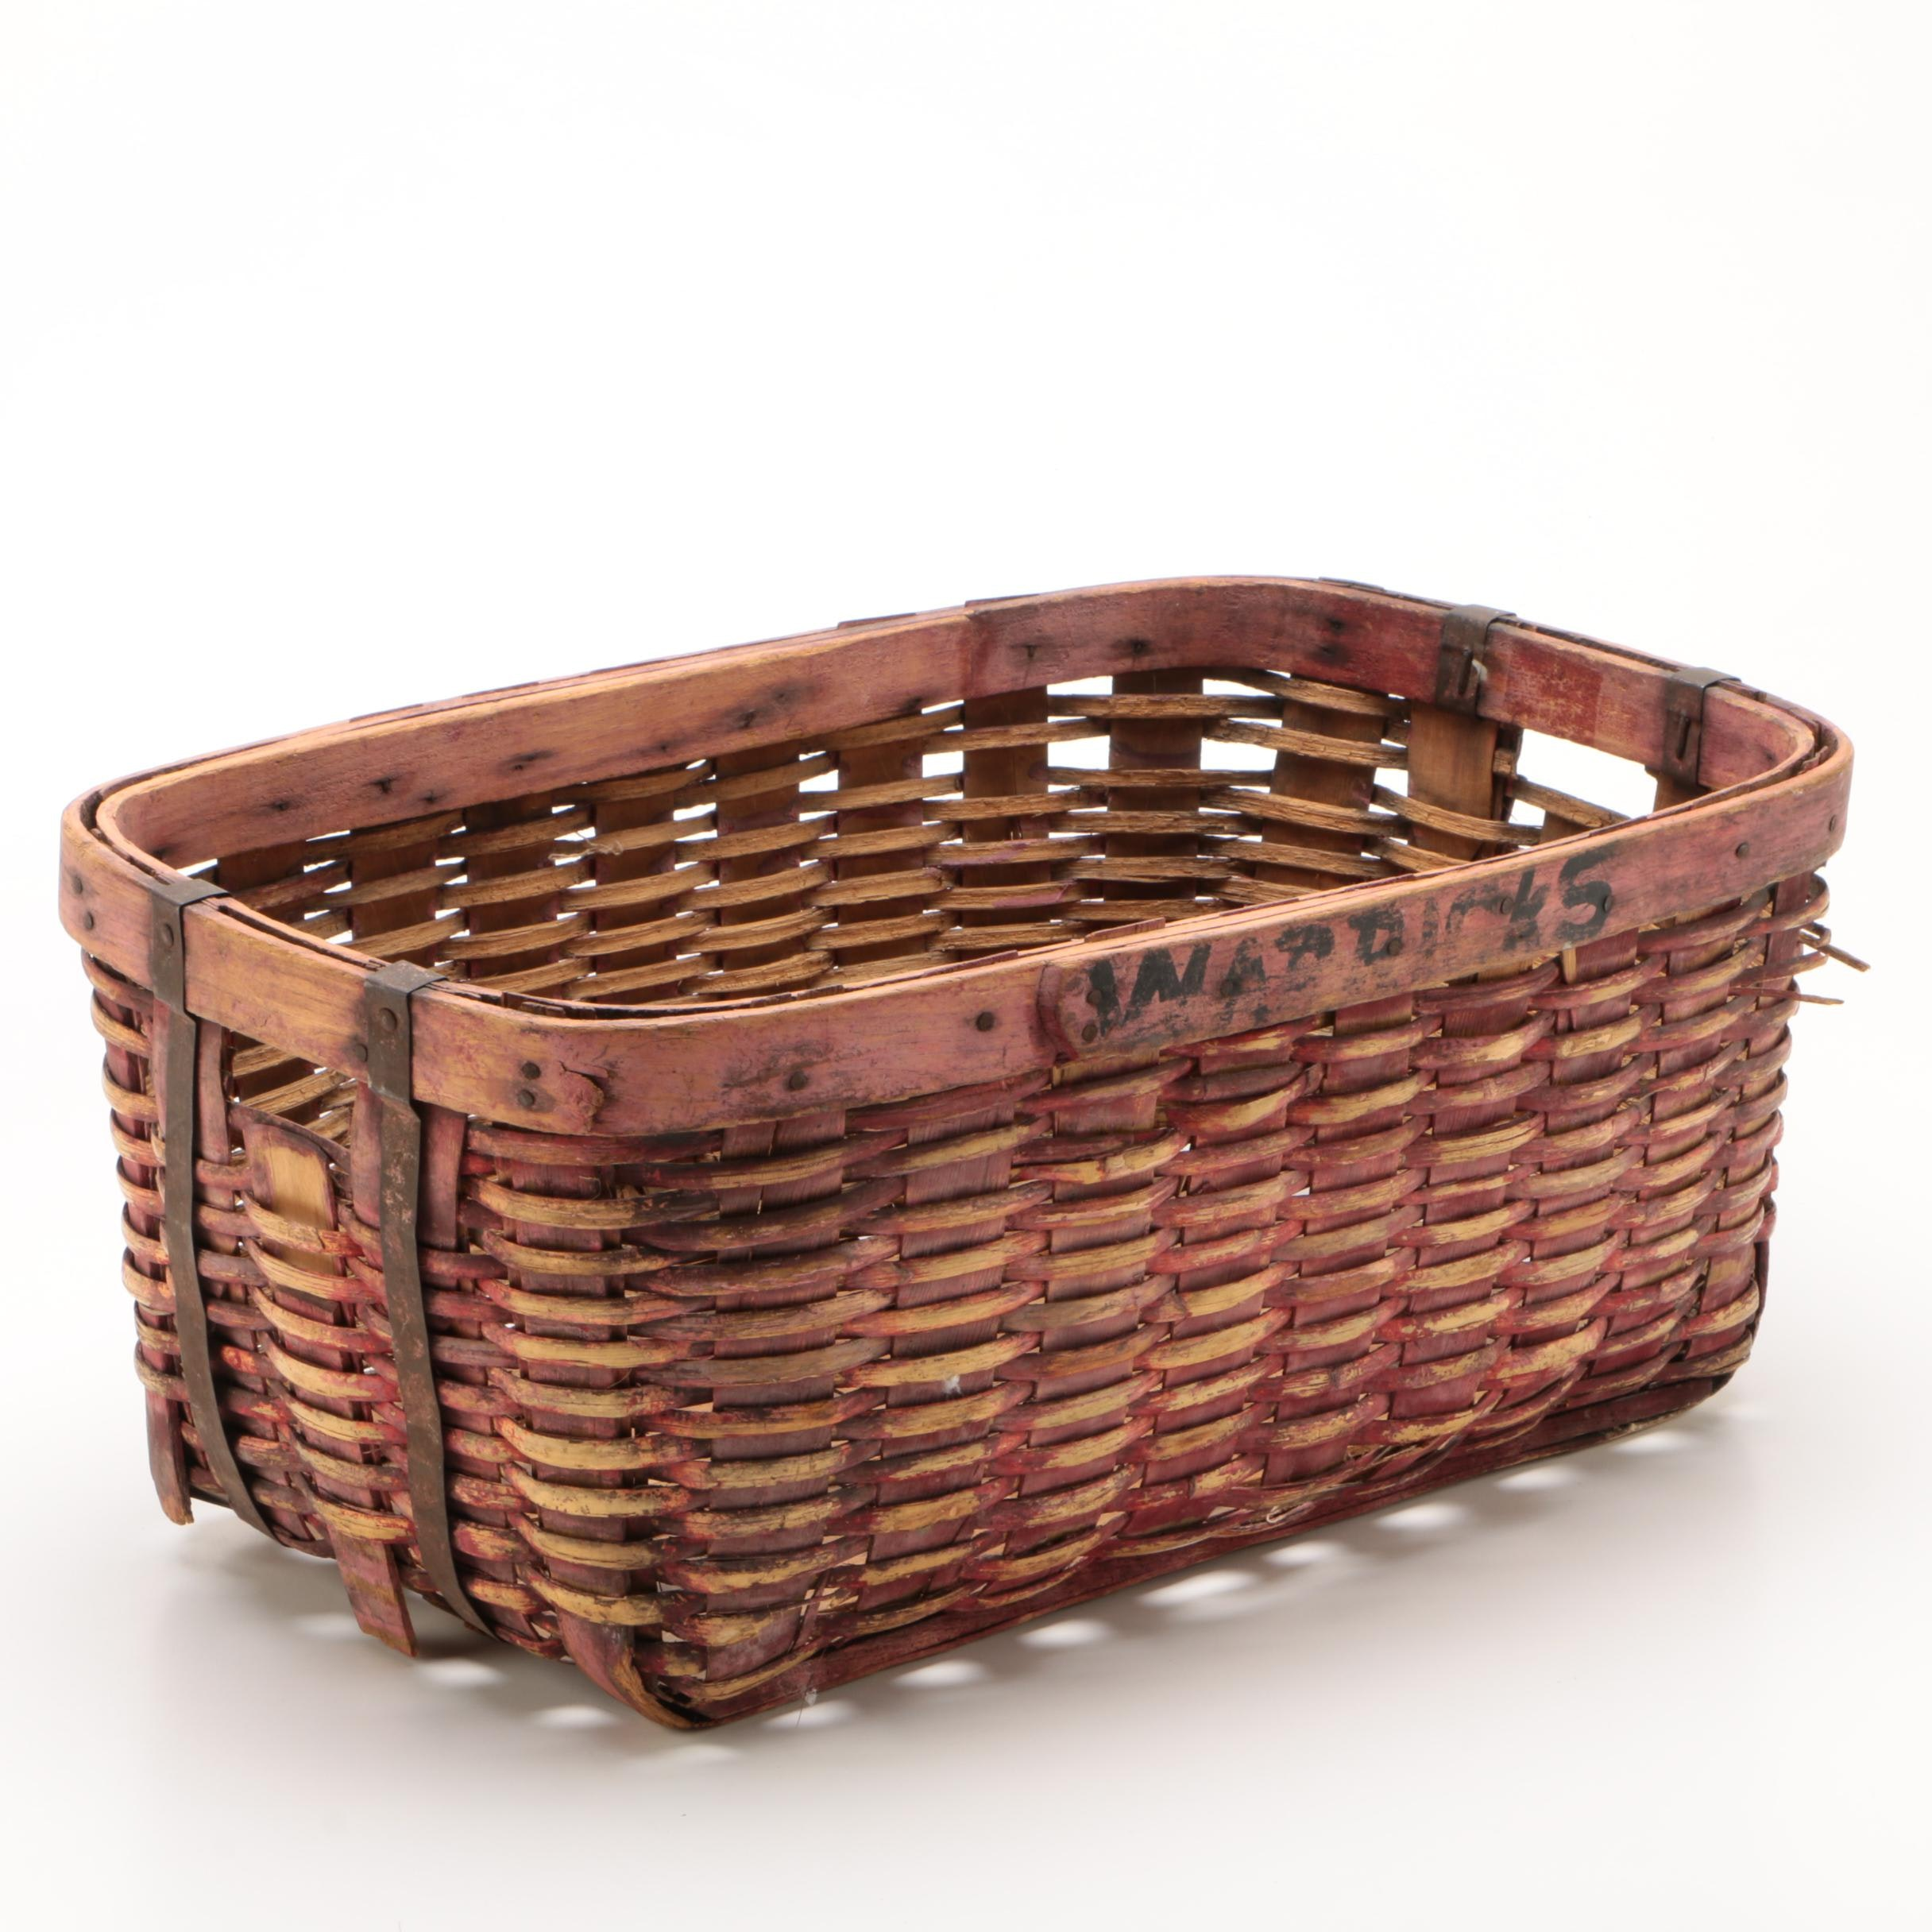 New England Painted Splint Gathering Basket, Early 20th Century